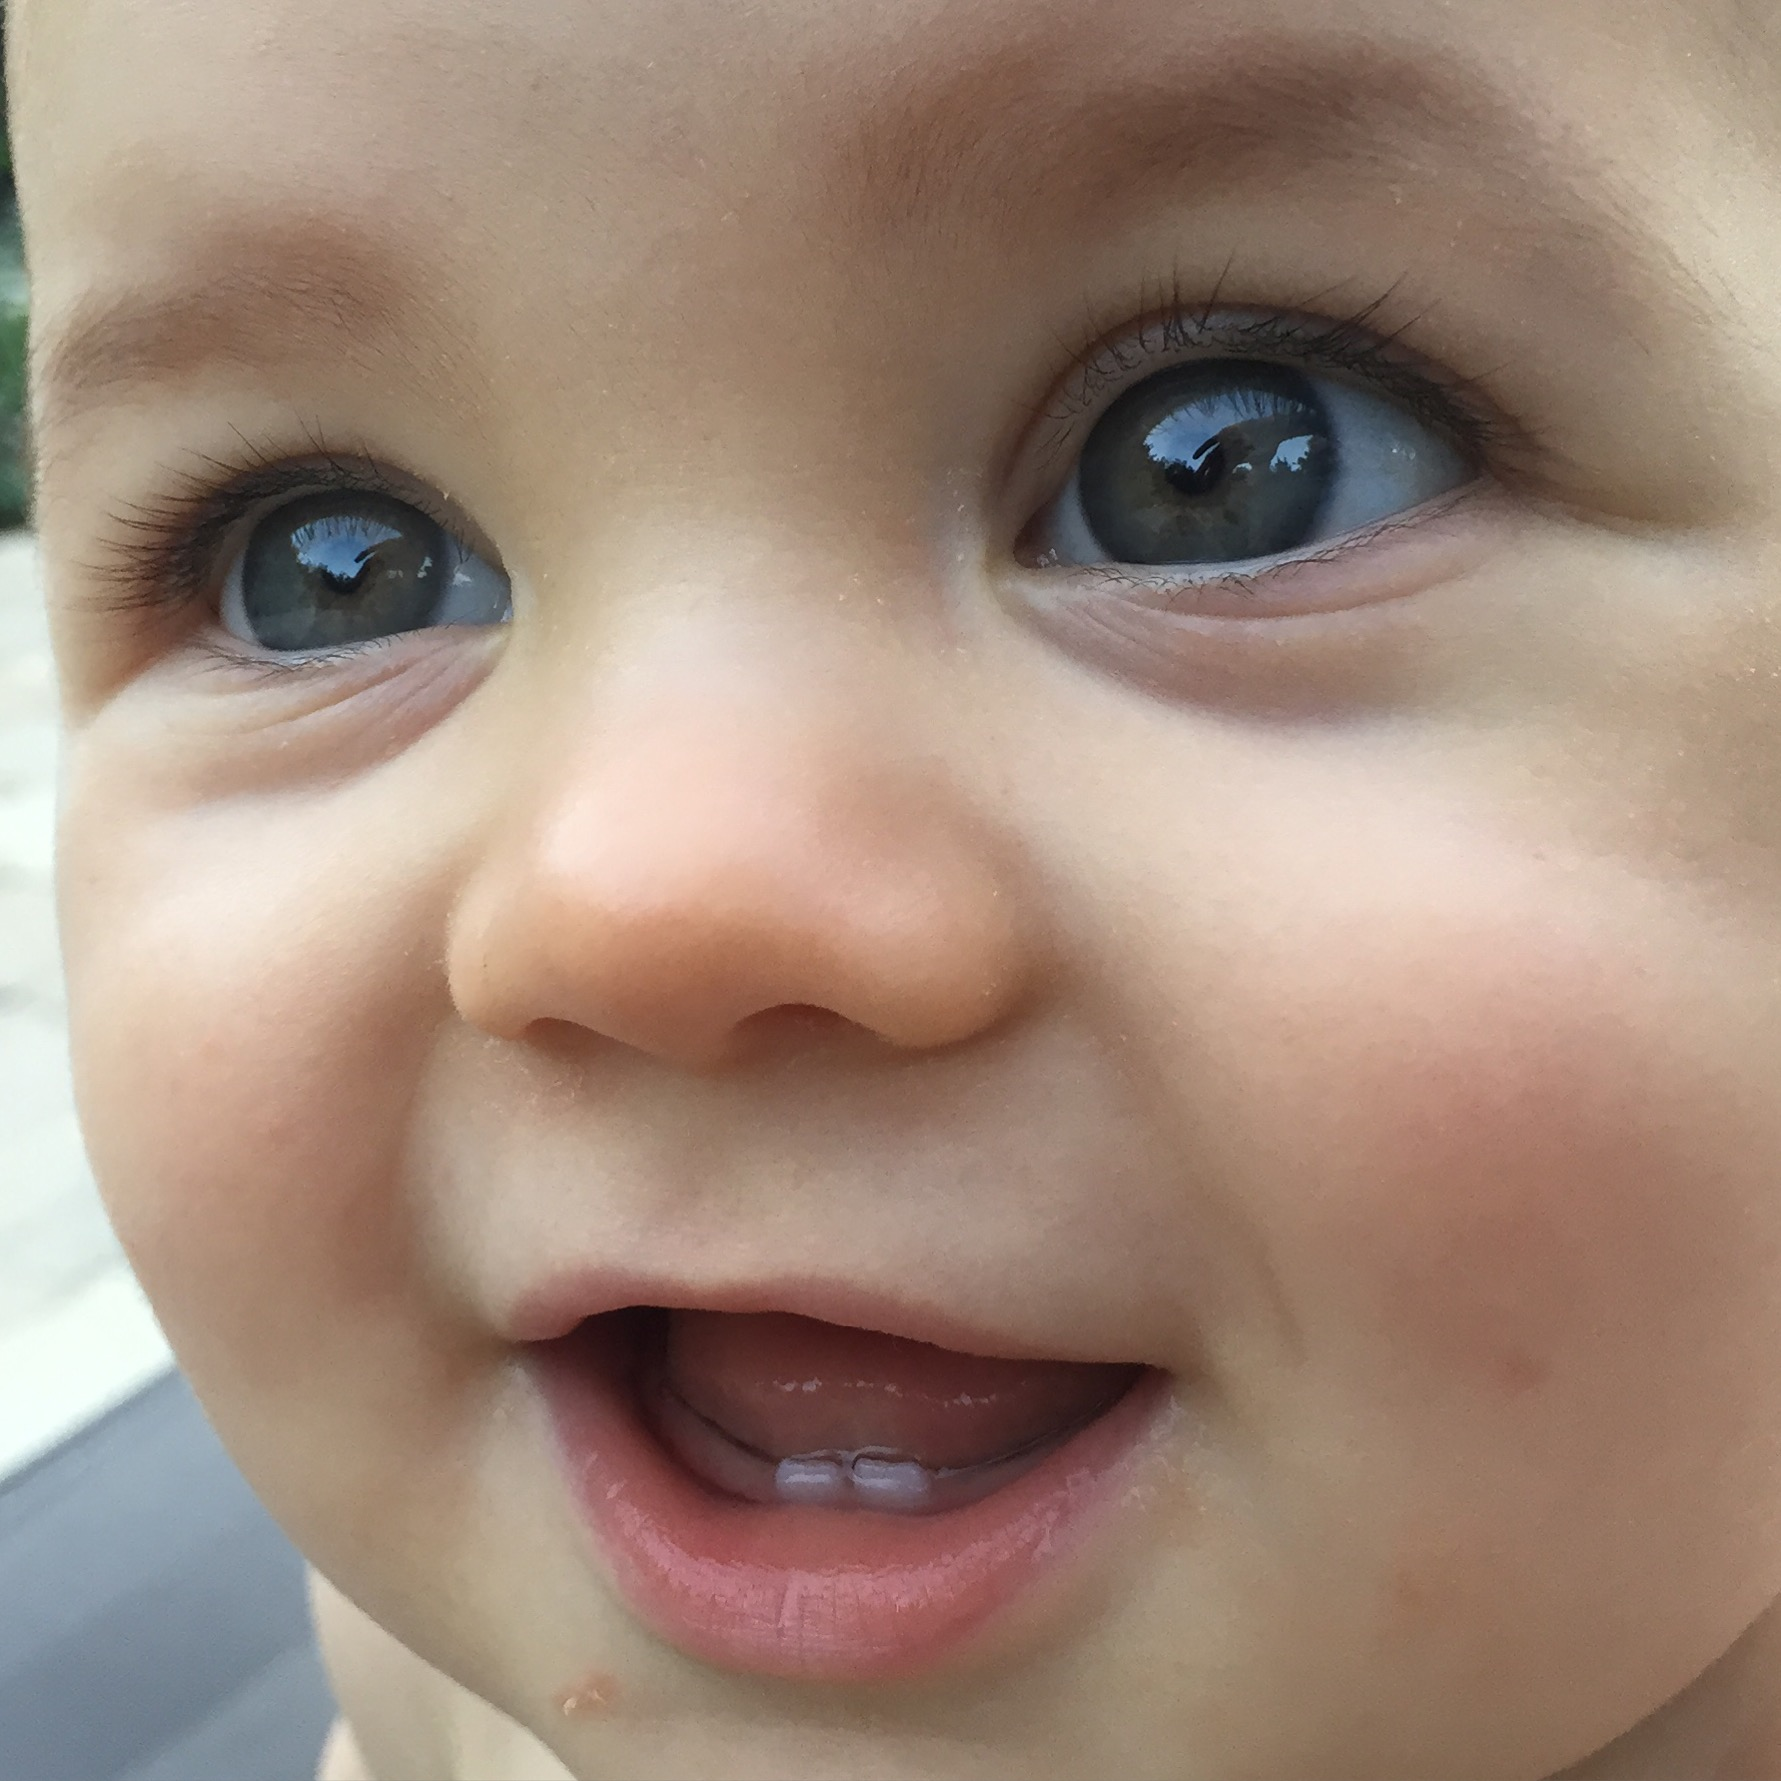 Here you can really see his first two teeth!